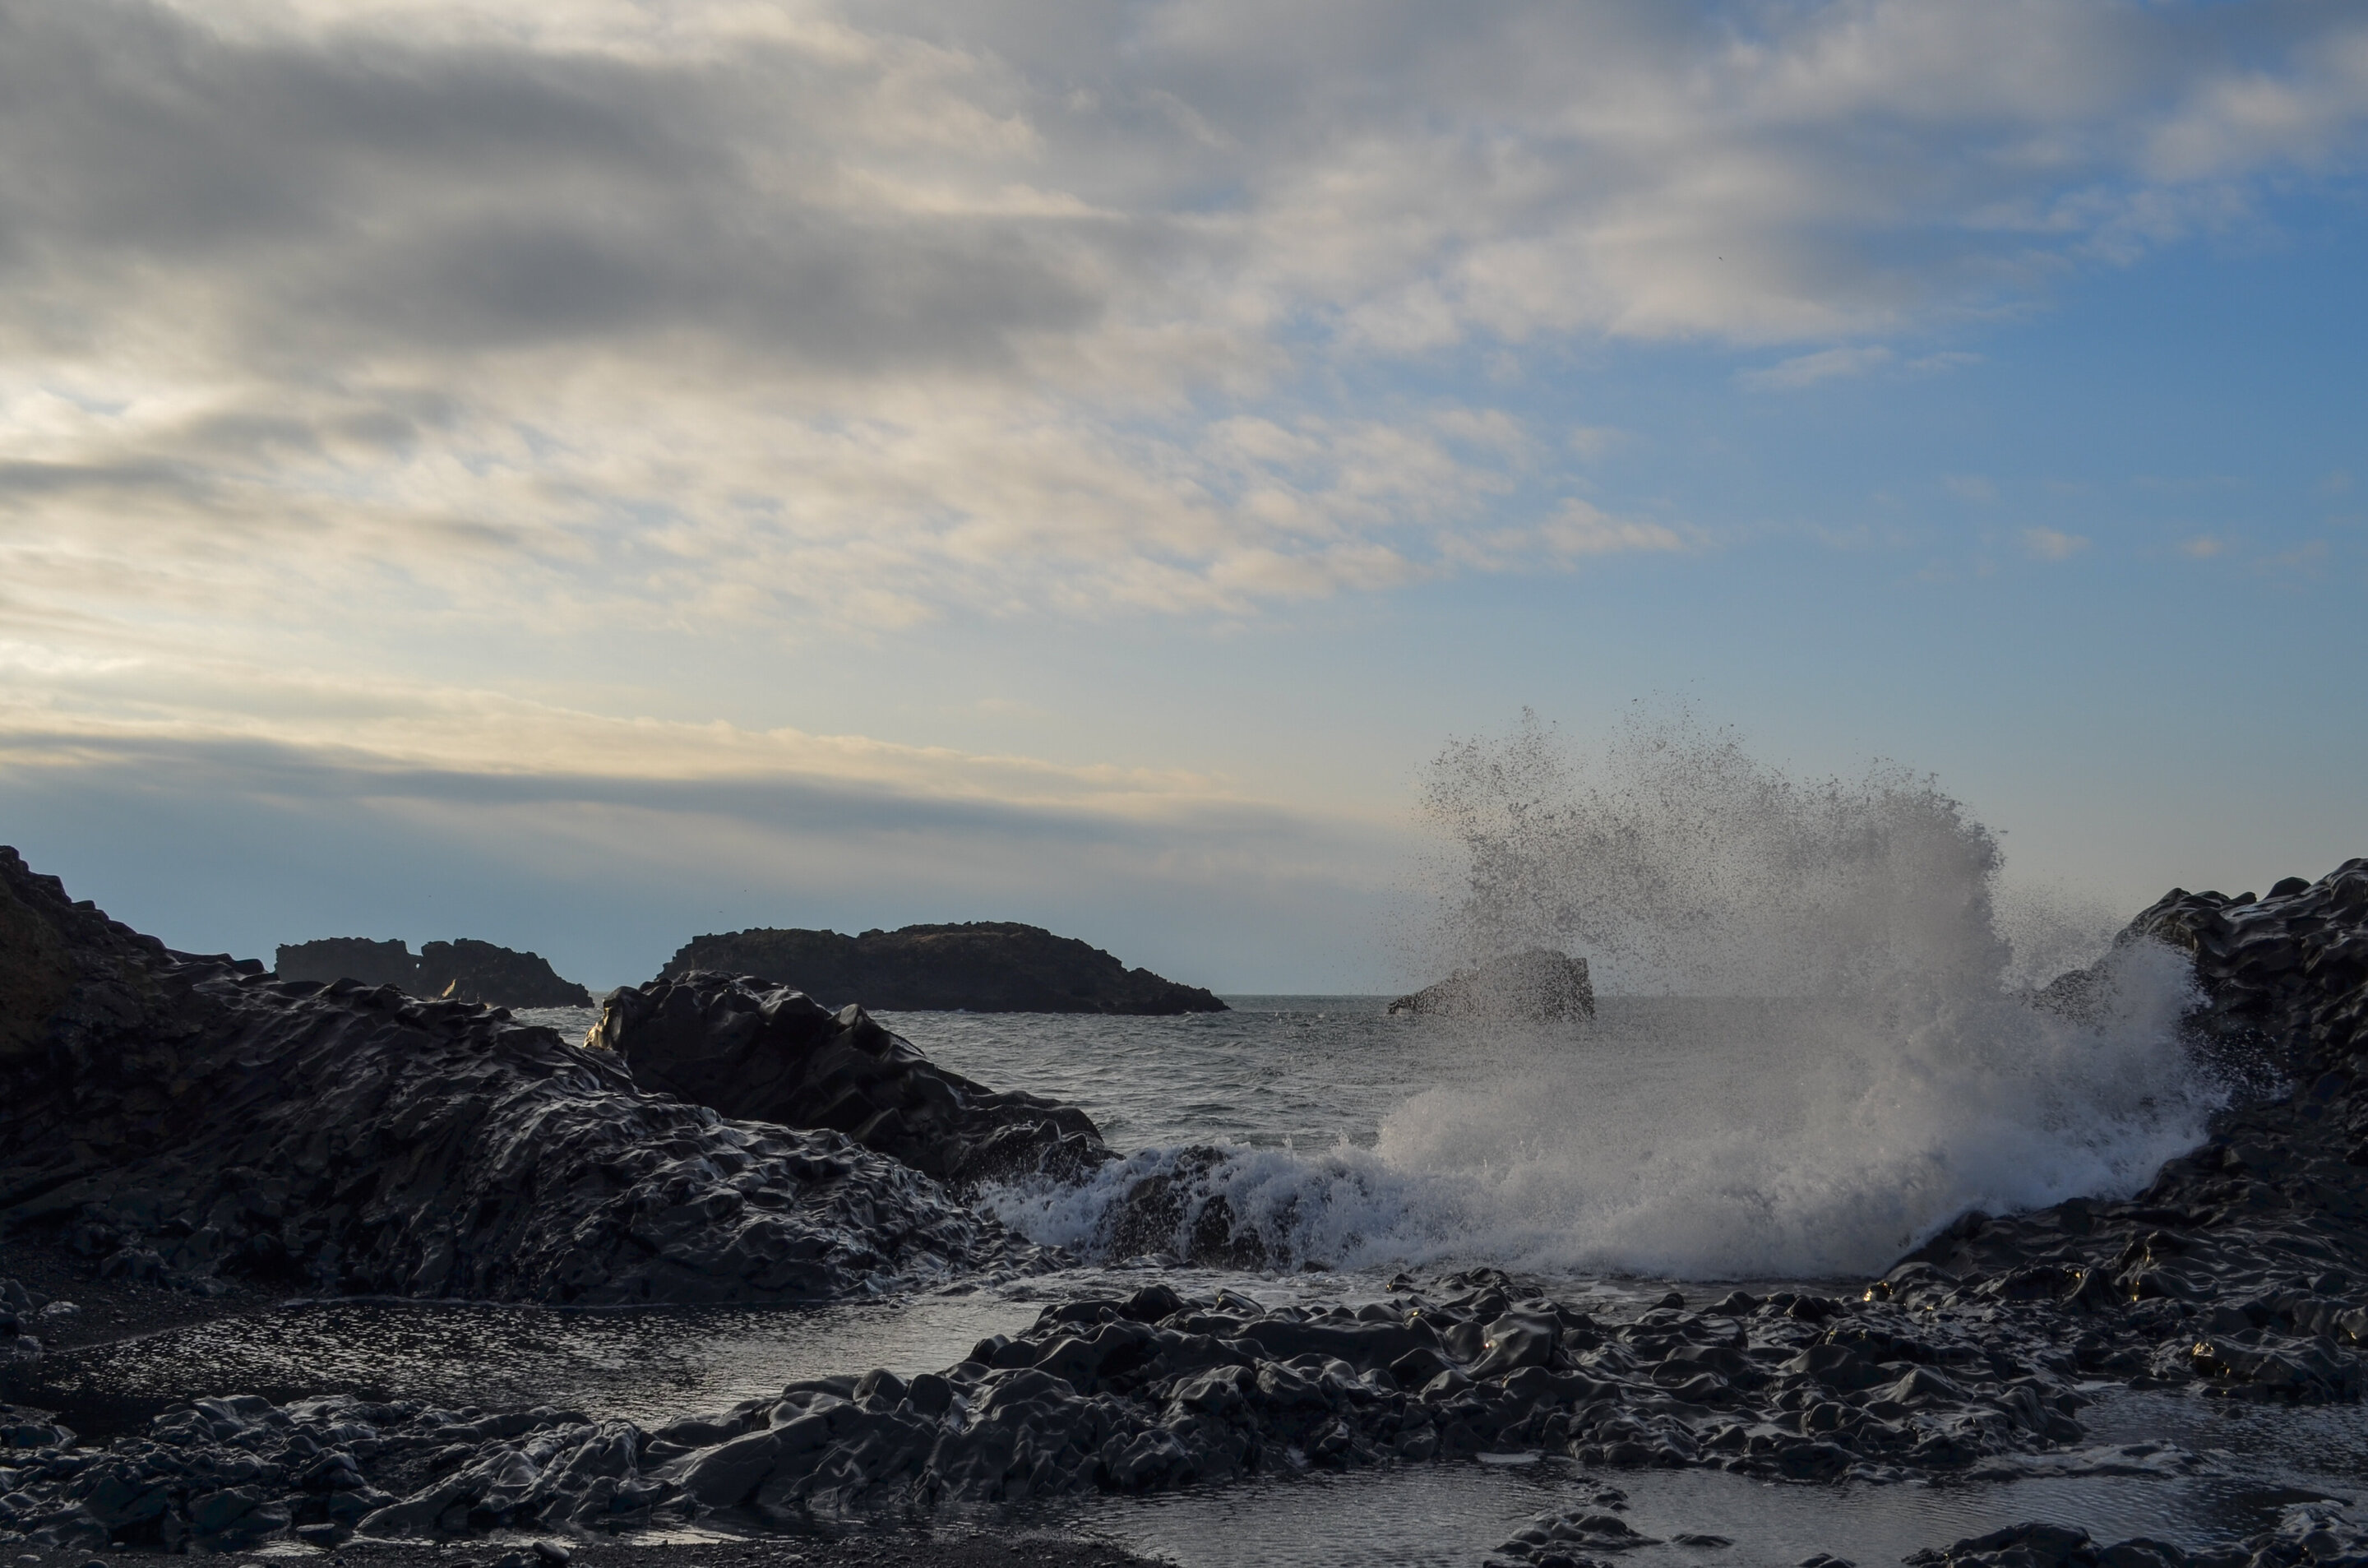 Ocean uptake of carbon dioxide could drop as carbon emissions are cut